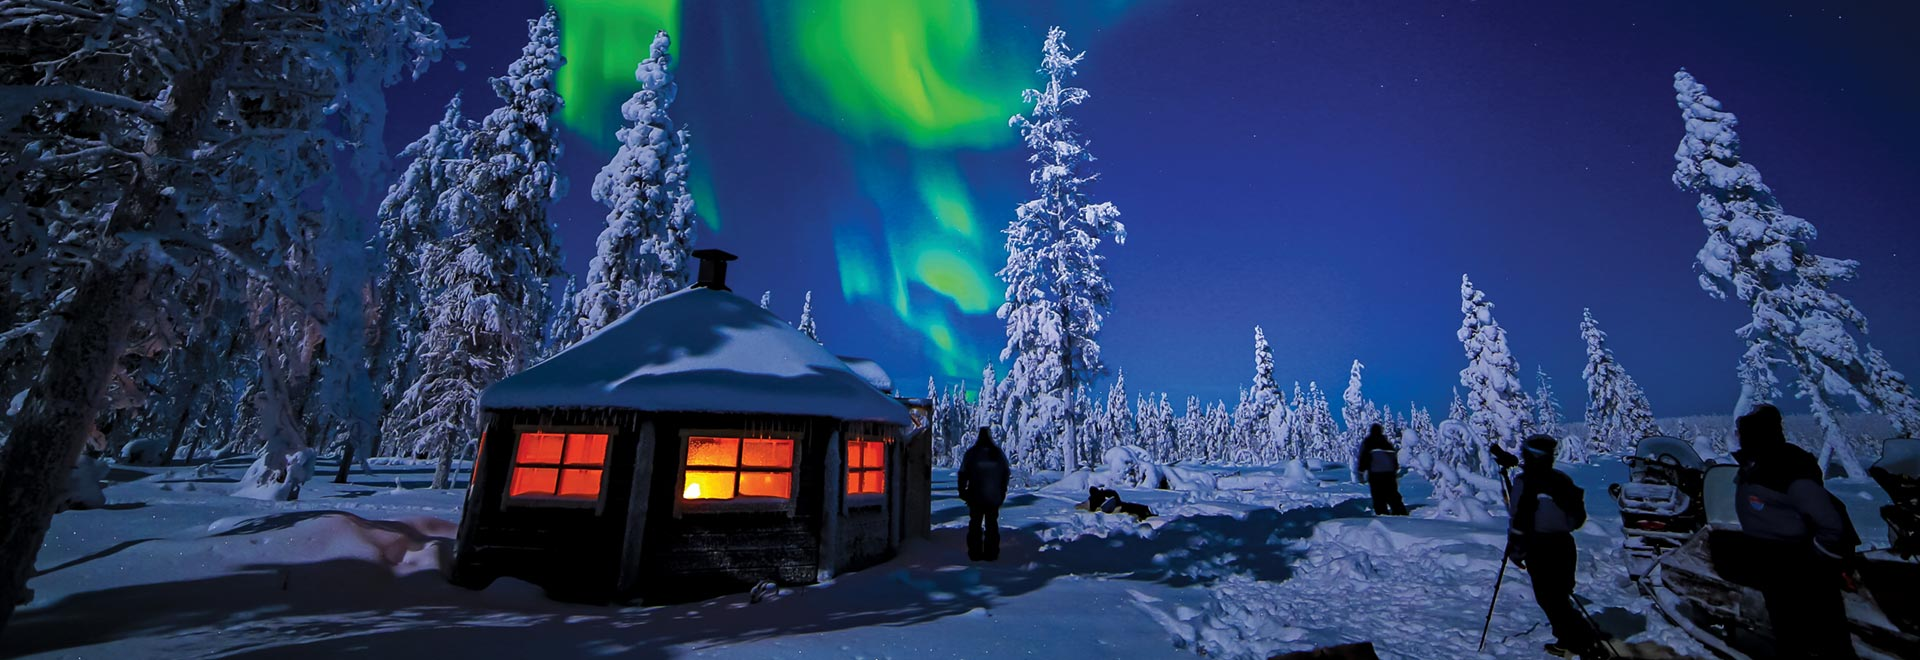 Northern Lights Christmas 2020 Northern Lights of Lapland | Abercrombie & Kent